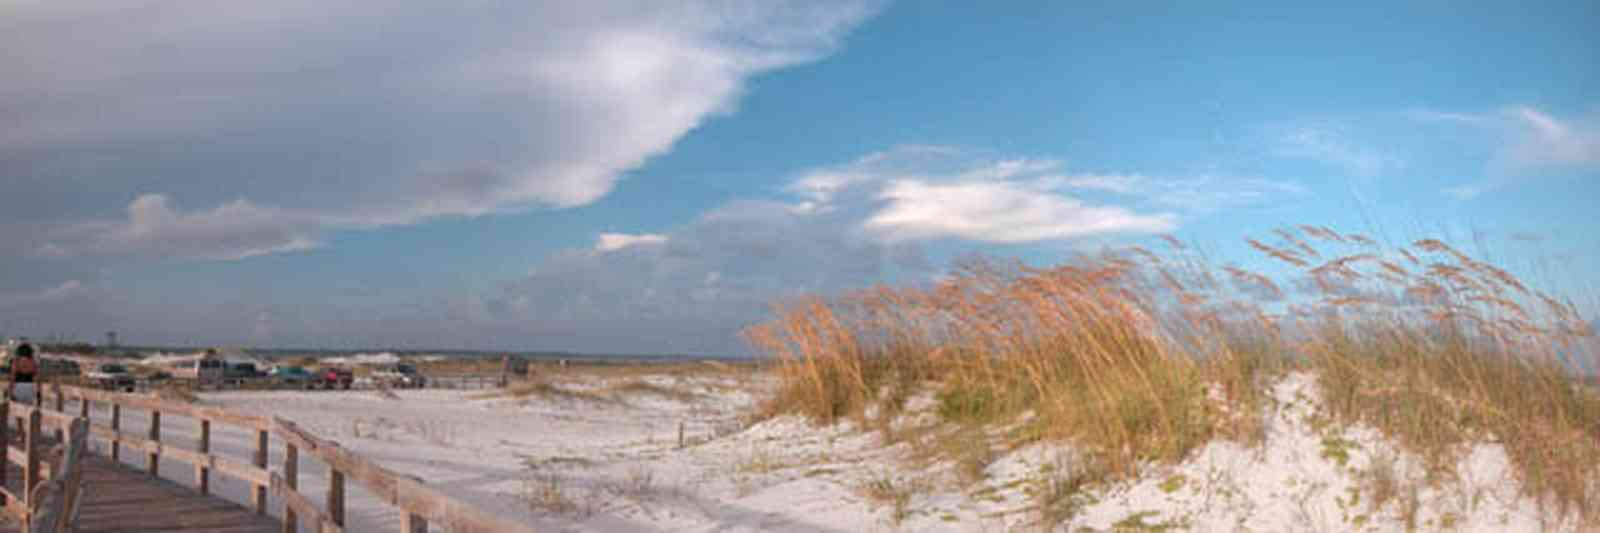 Gulf-Islands-National-Seashore:-Opal-Beach_07.jpg:  dunes, sea oats, boardwalk, parking lot, mixed skies, gulf of mexico, beach habitat, barrier island, quartz sand, fiddler crab